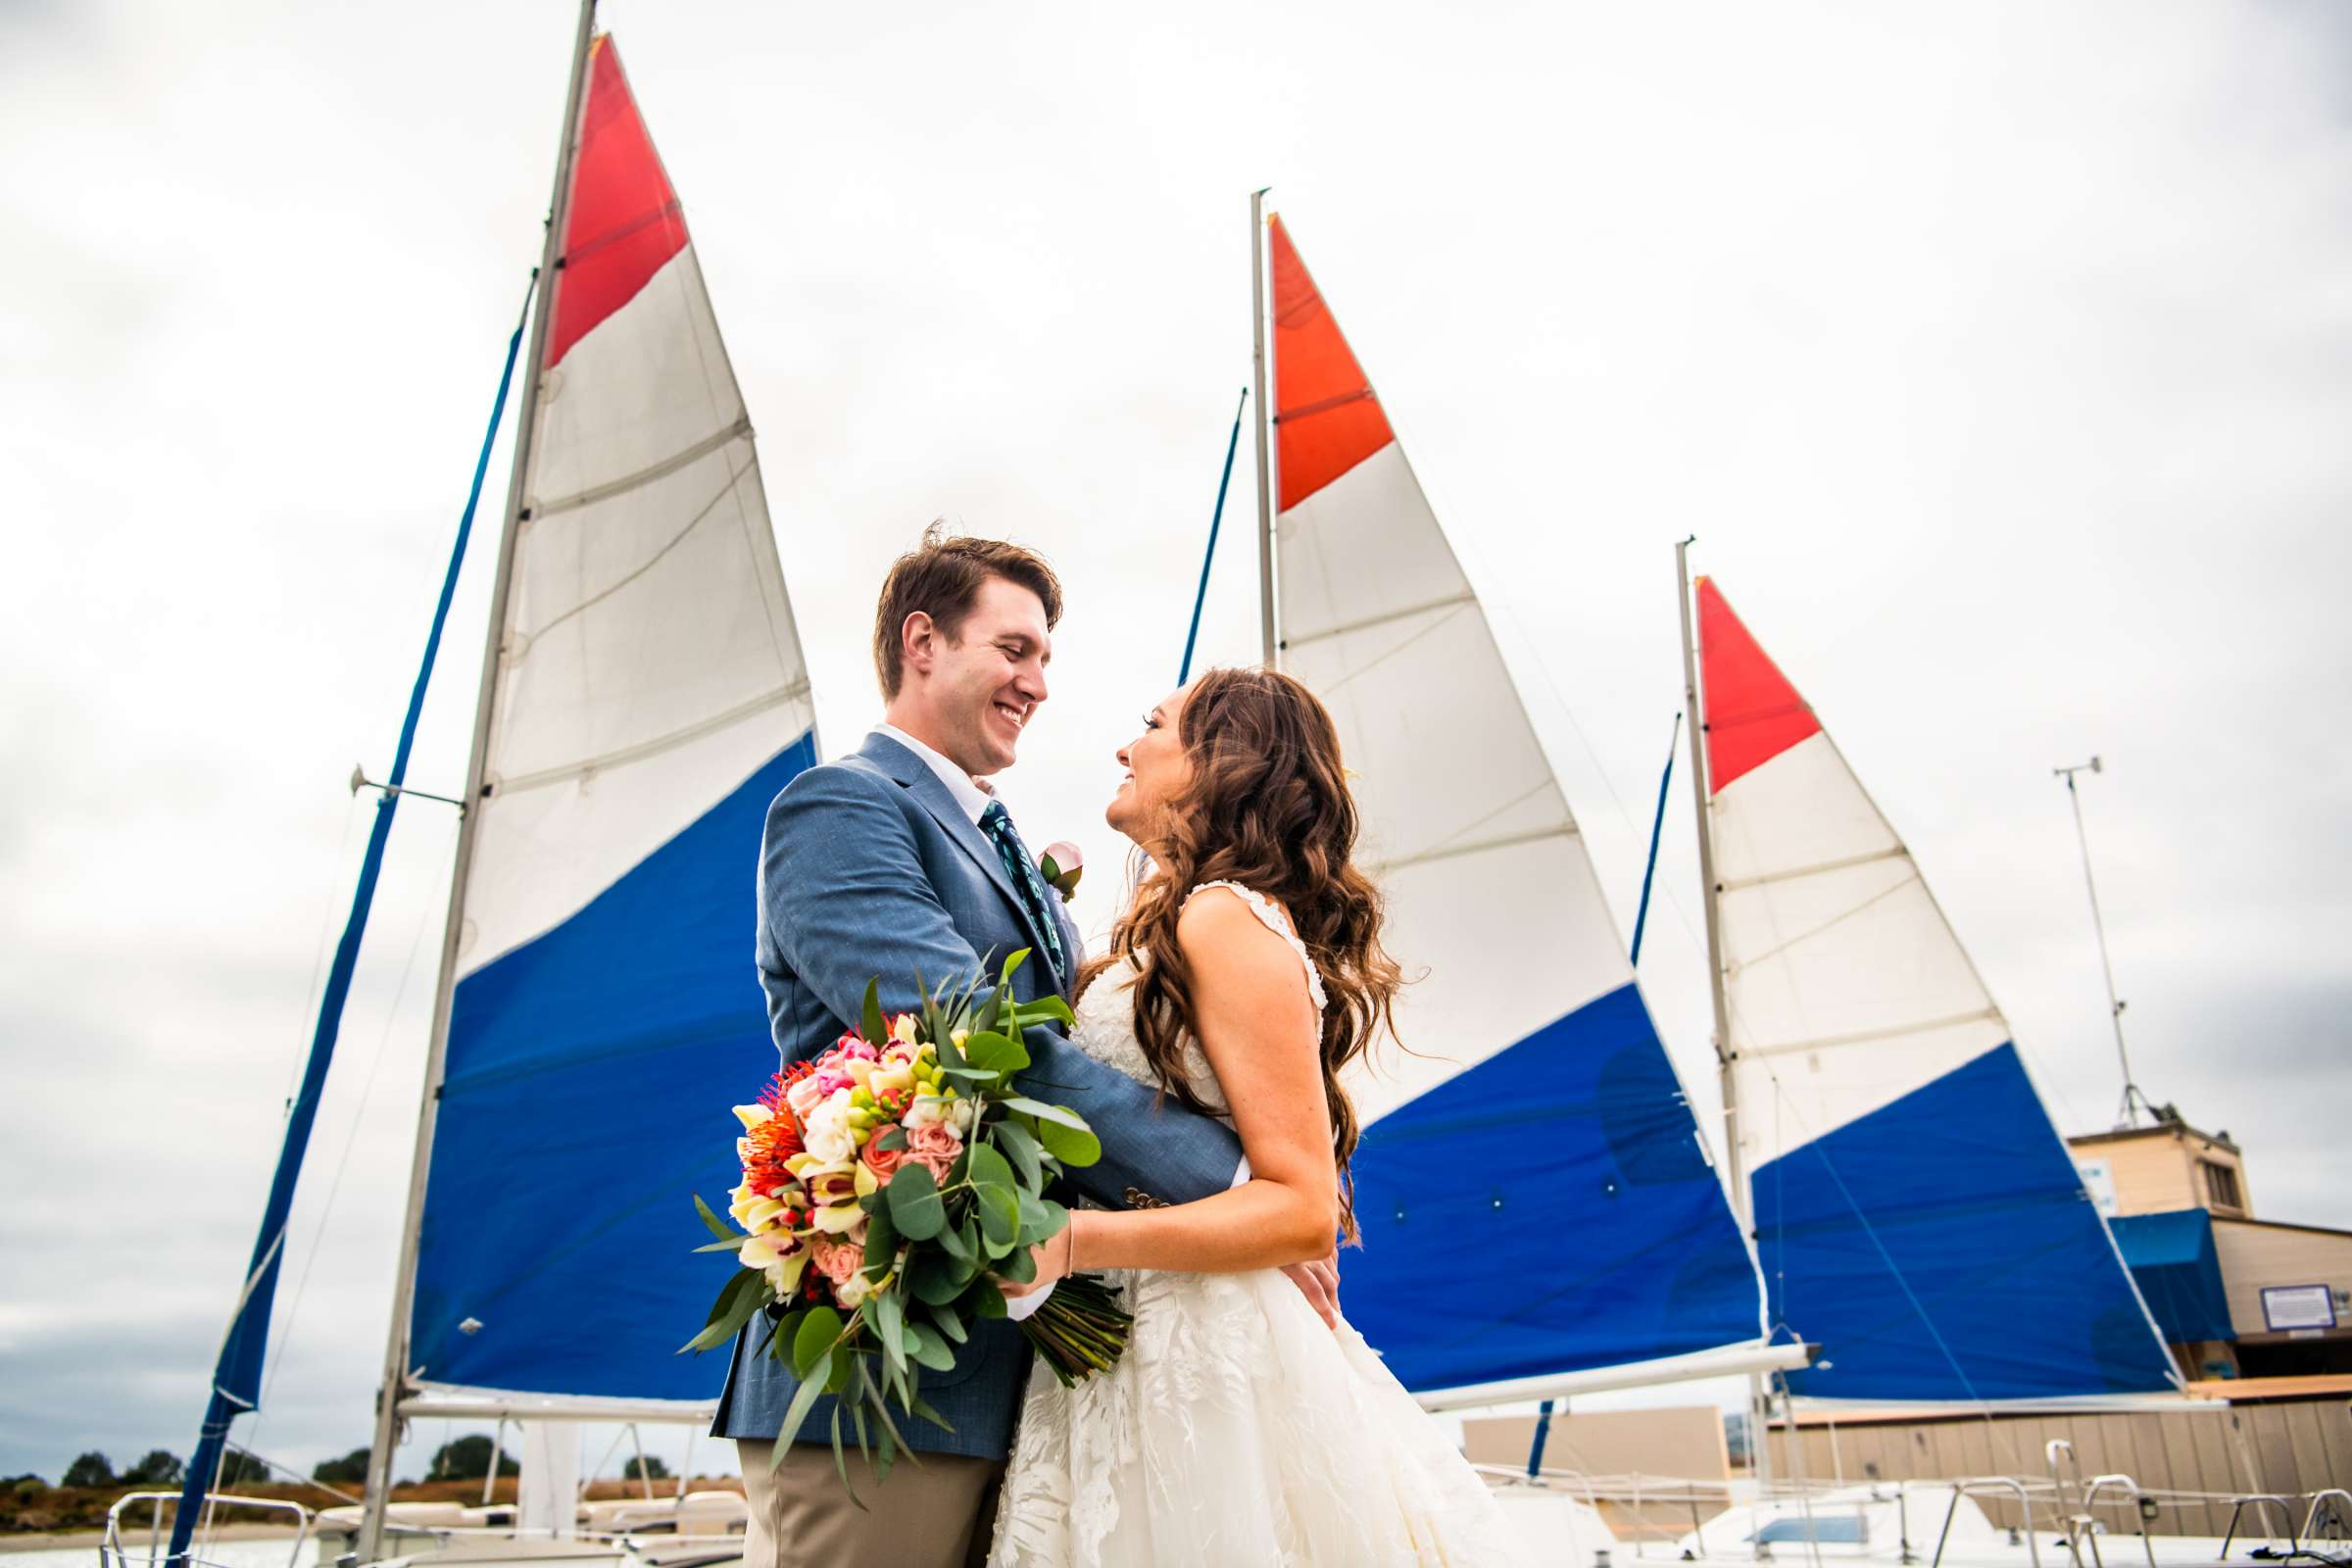 San Diego Mission Bay Resort Wedding coordinated by Cafe Au Love, Lauren and Adam Wedding Photo #113 by True Photography